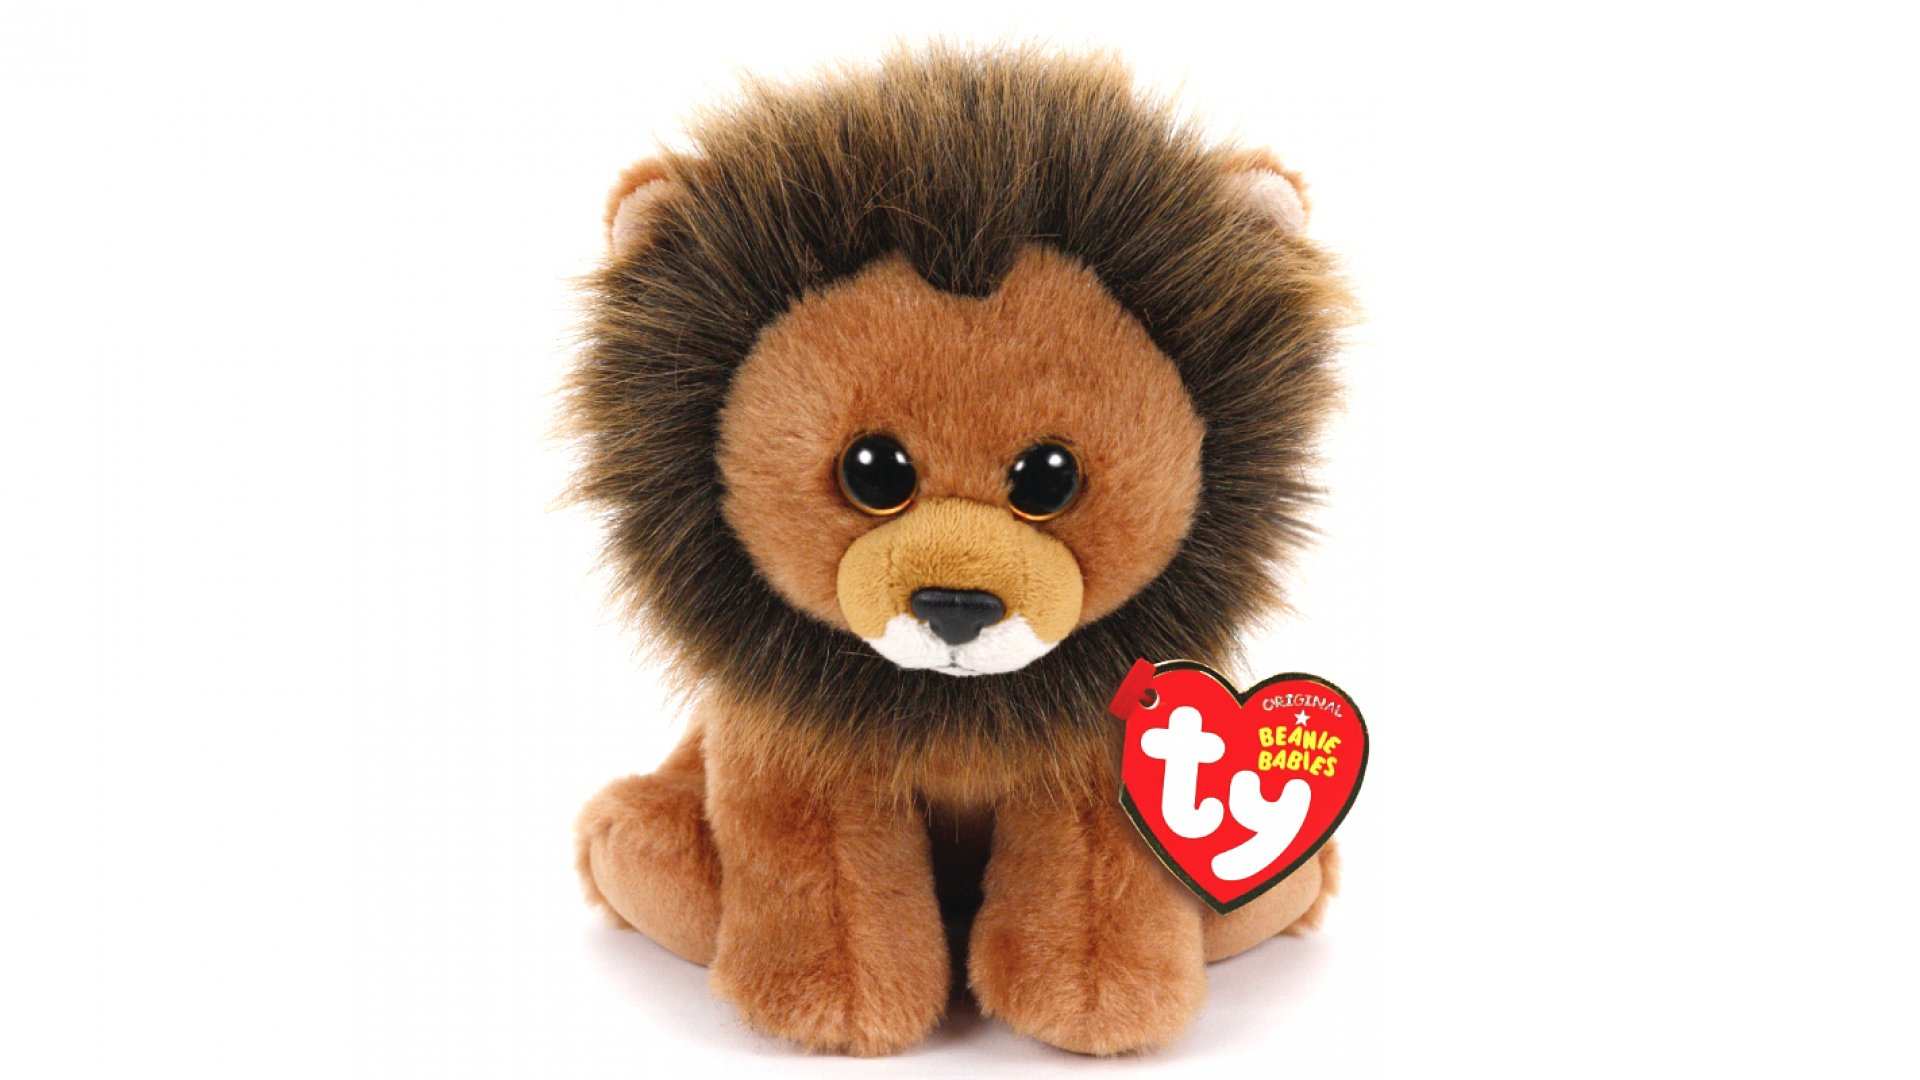 Plush Toy-Maker Creates 'Cecil the Lion' Beanie Baby